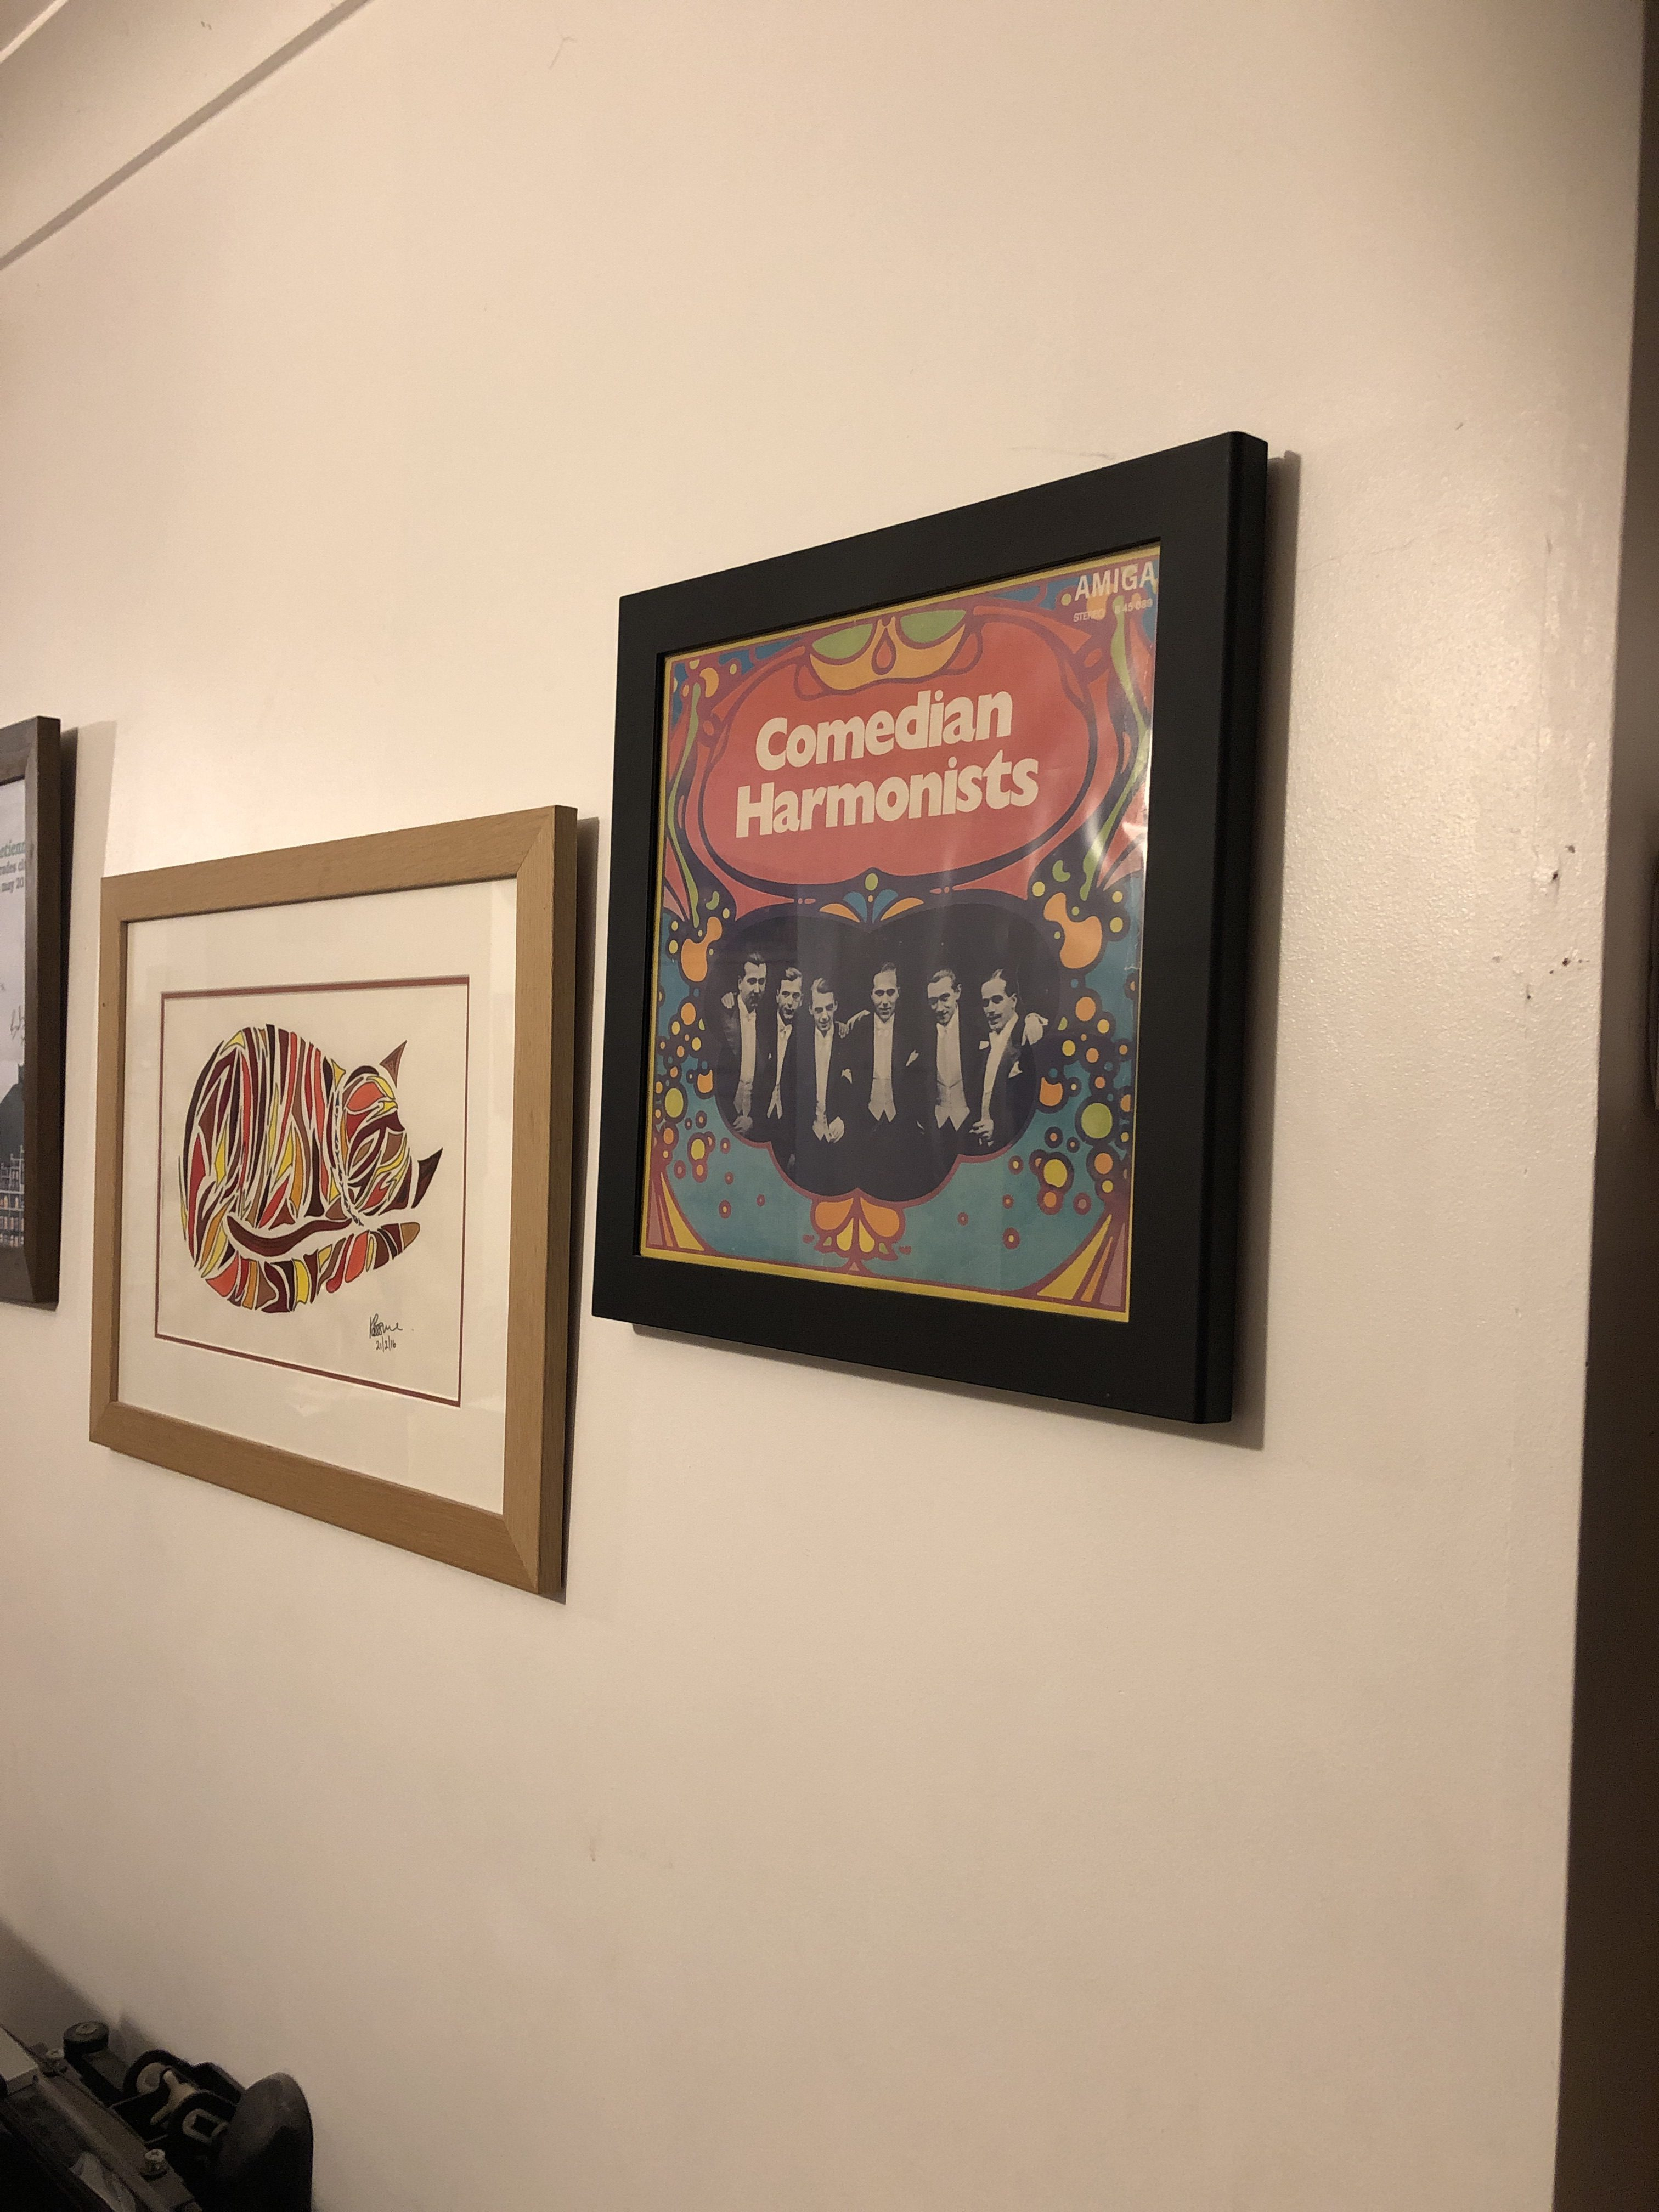 Comedian Harmonists LP on wall